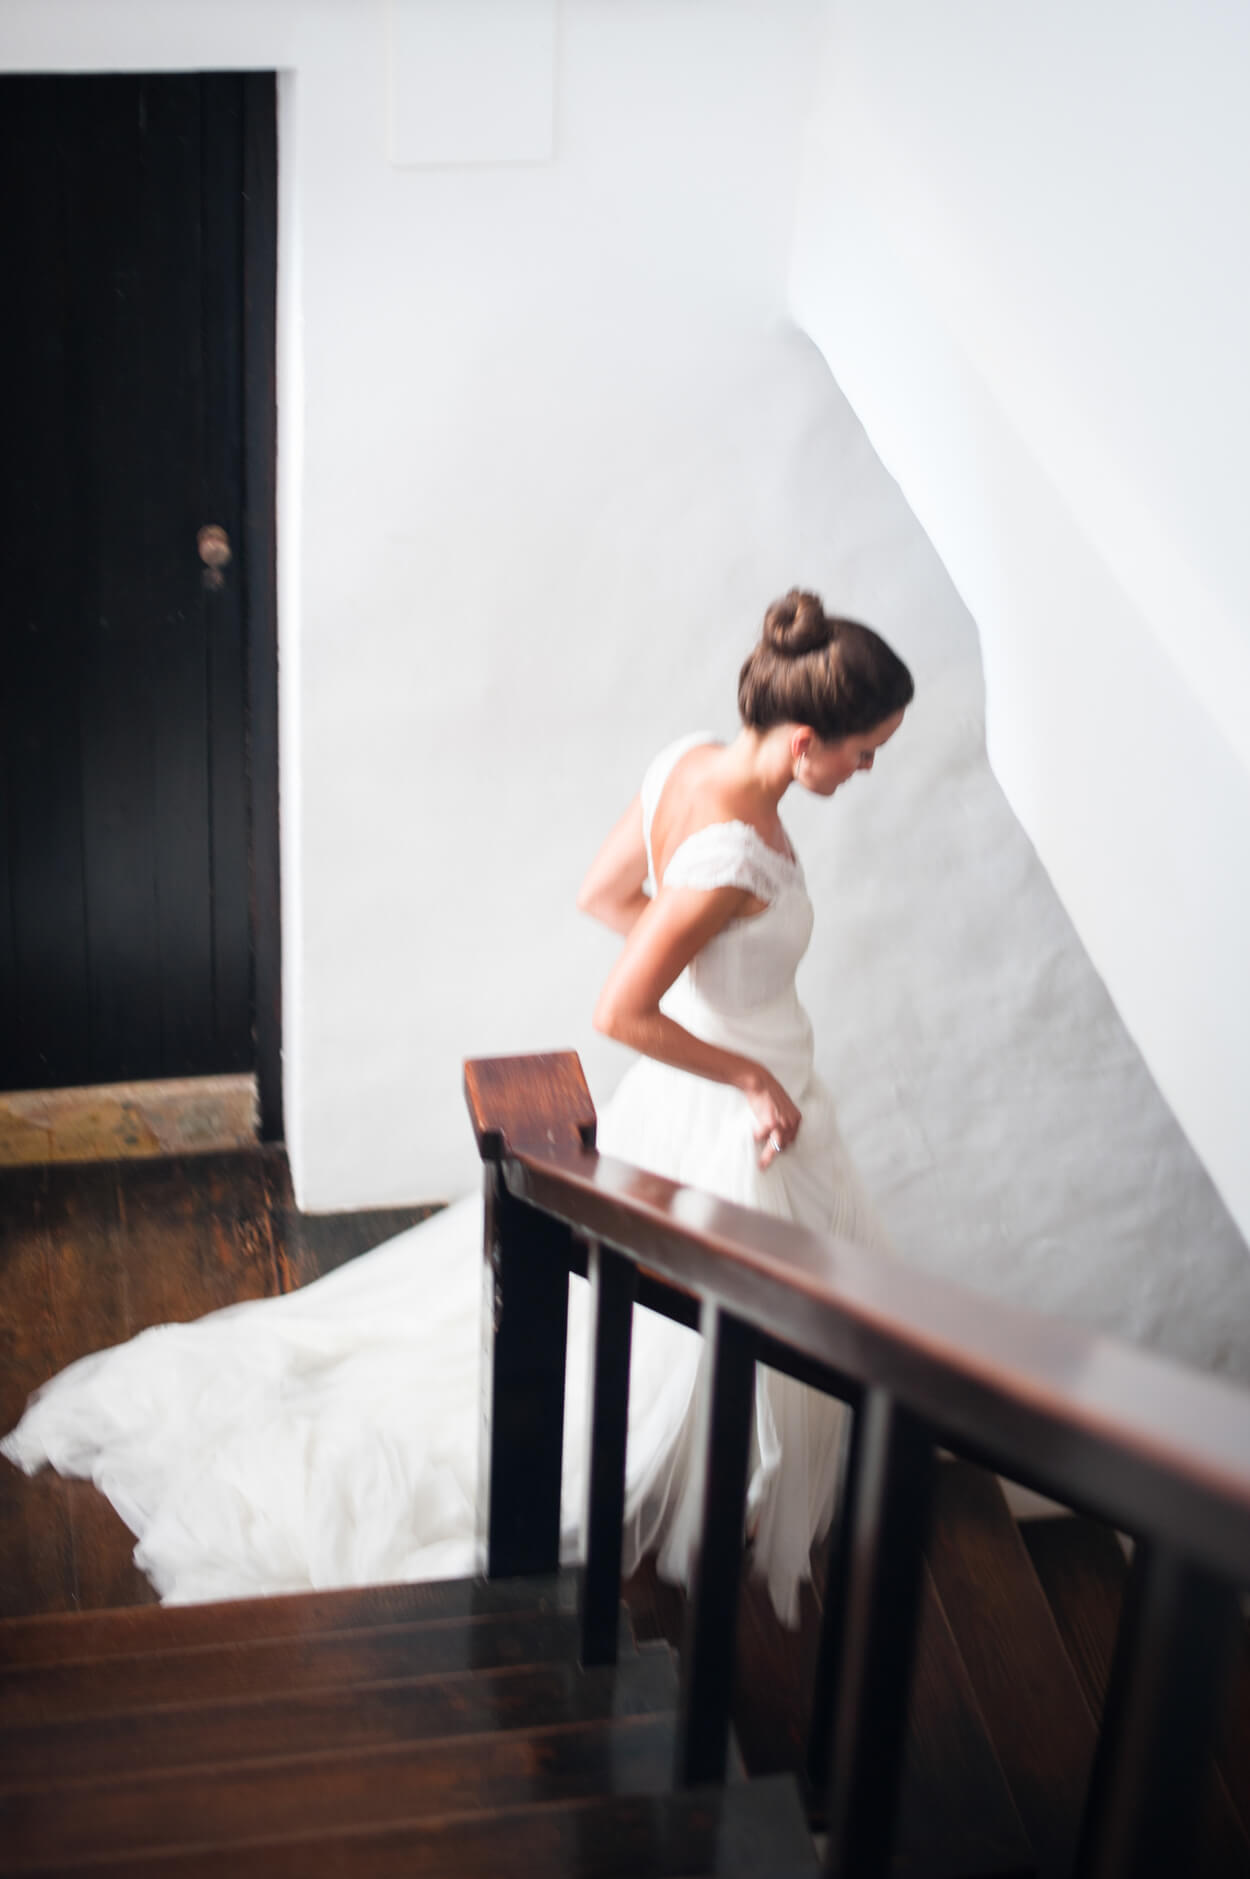 bride walking stairs ceremony entrance blur photo